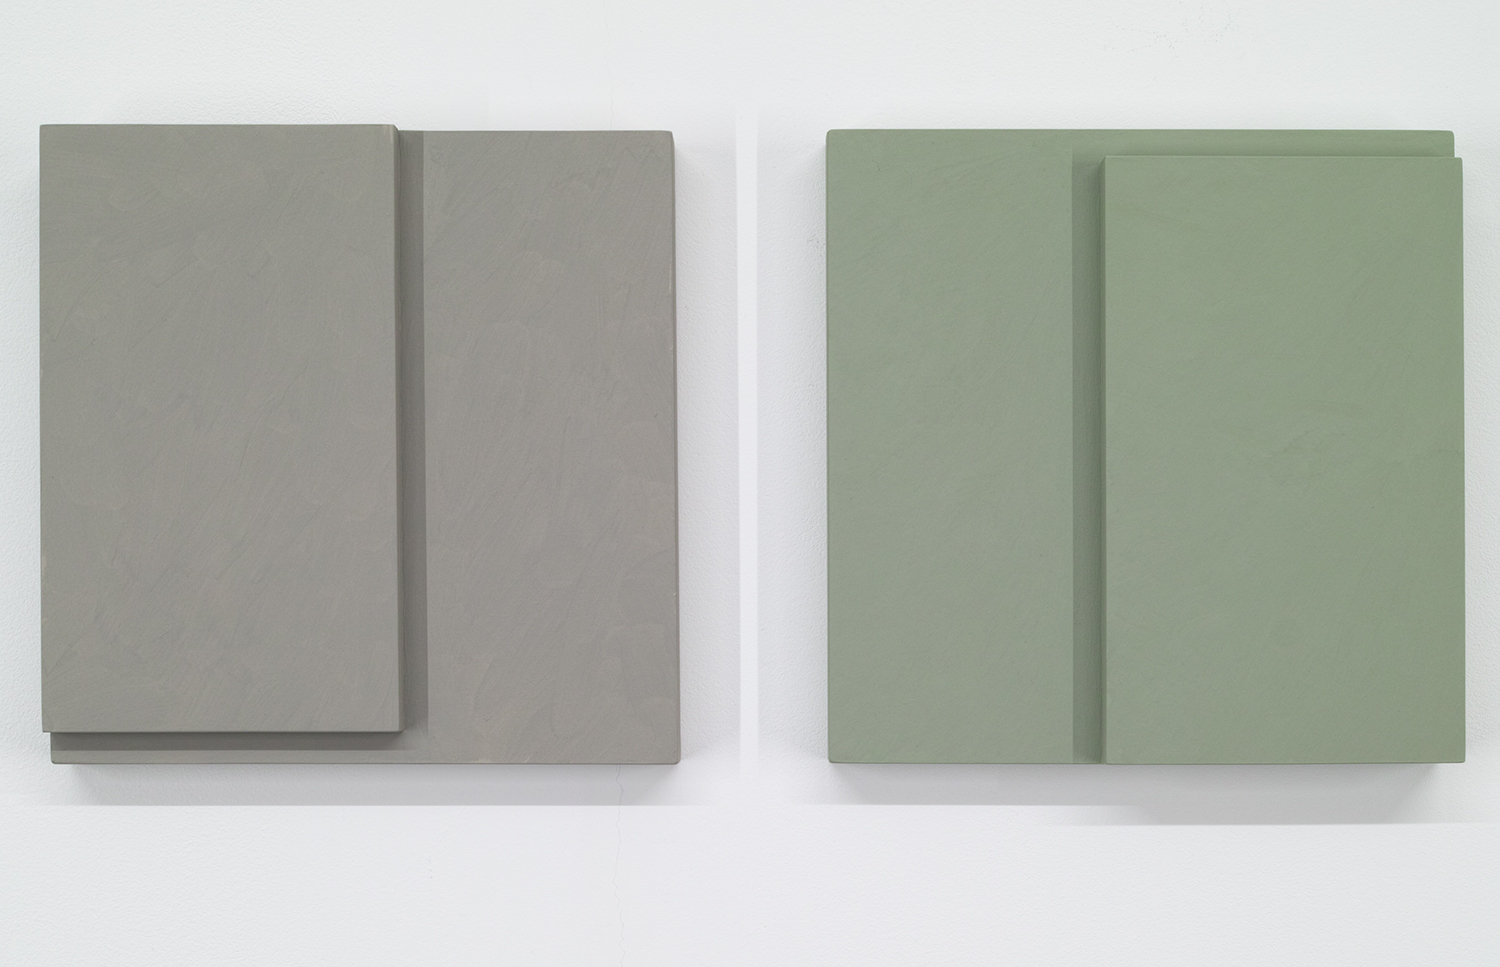 TS1717<br>Colour Gesso on Panel, 20 x 20 cm each (set of 2), 2017